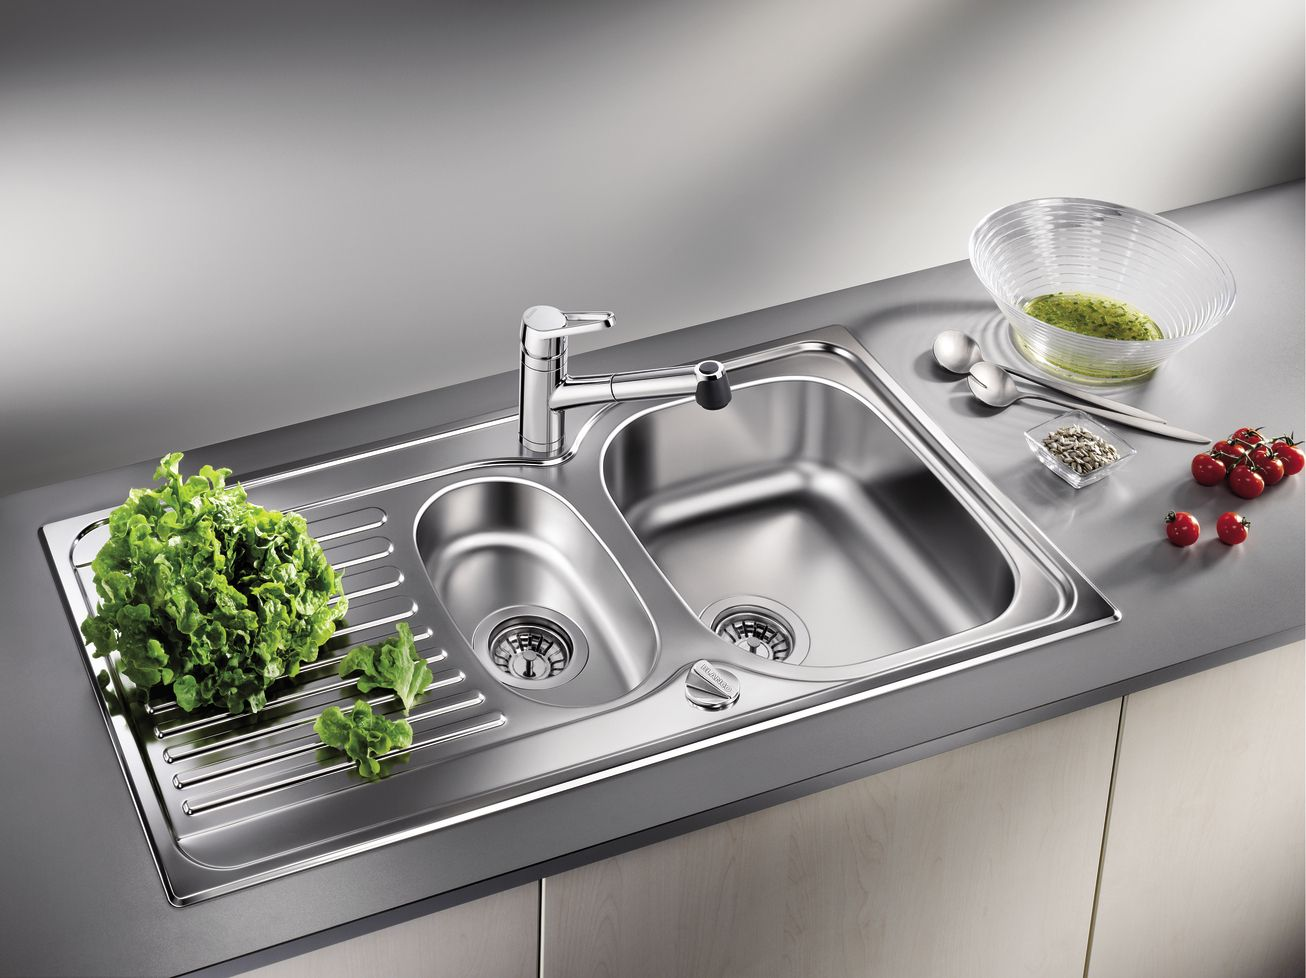 Stainless Steel Kitchen Sink Full Review and Choosing Advice. Modern kitchen element with many working surfaces